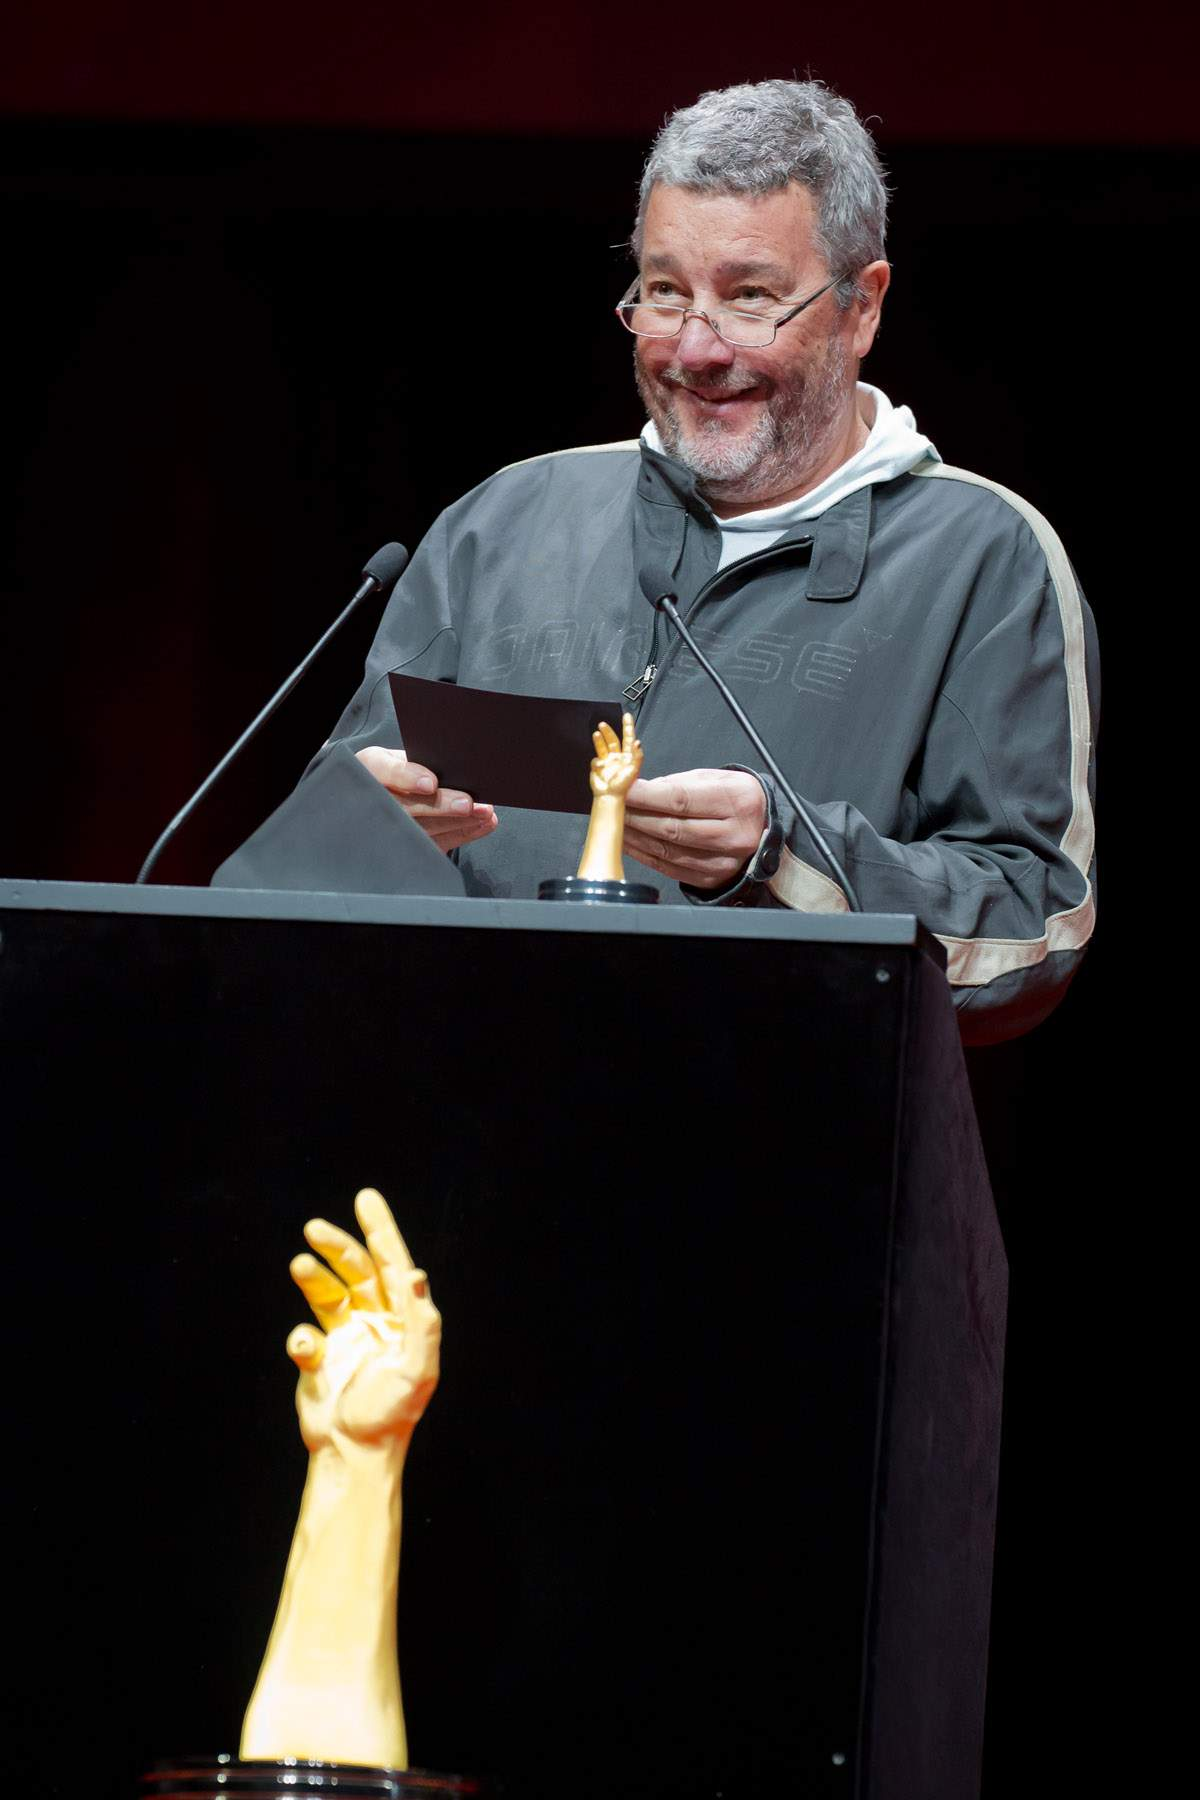 Philippe Starck (jury member of the GPHG 2013)